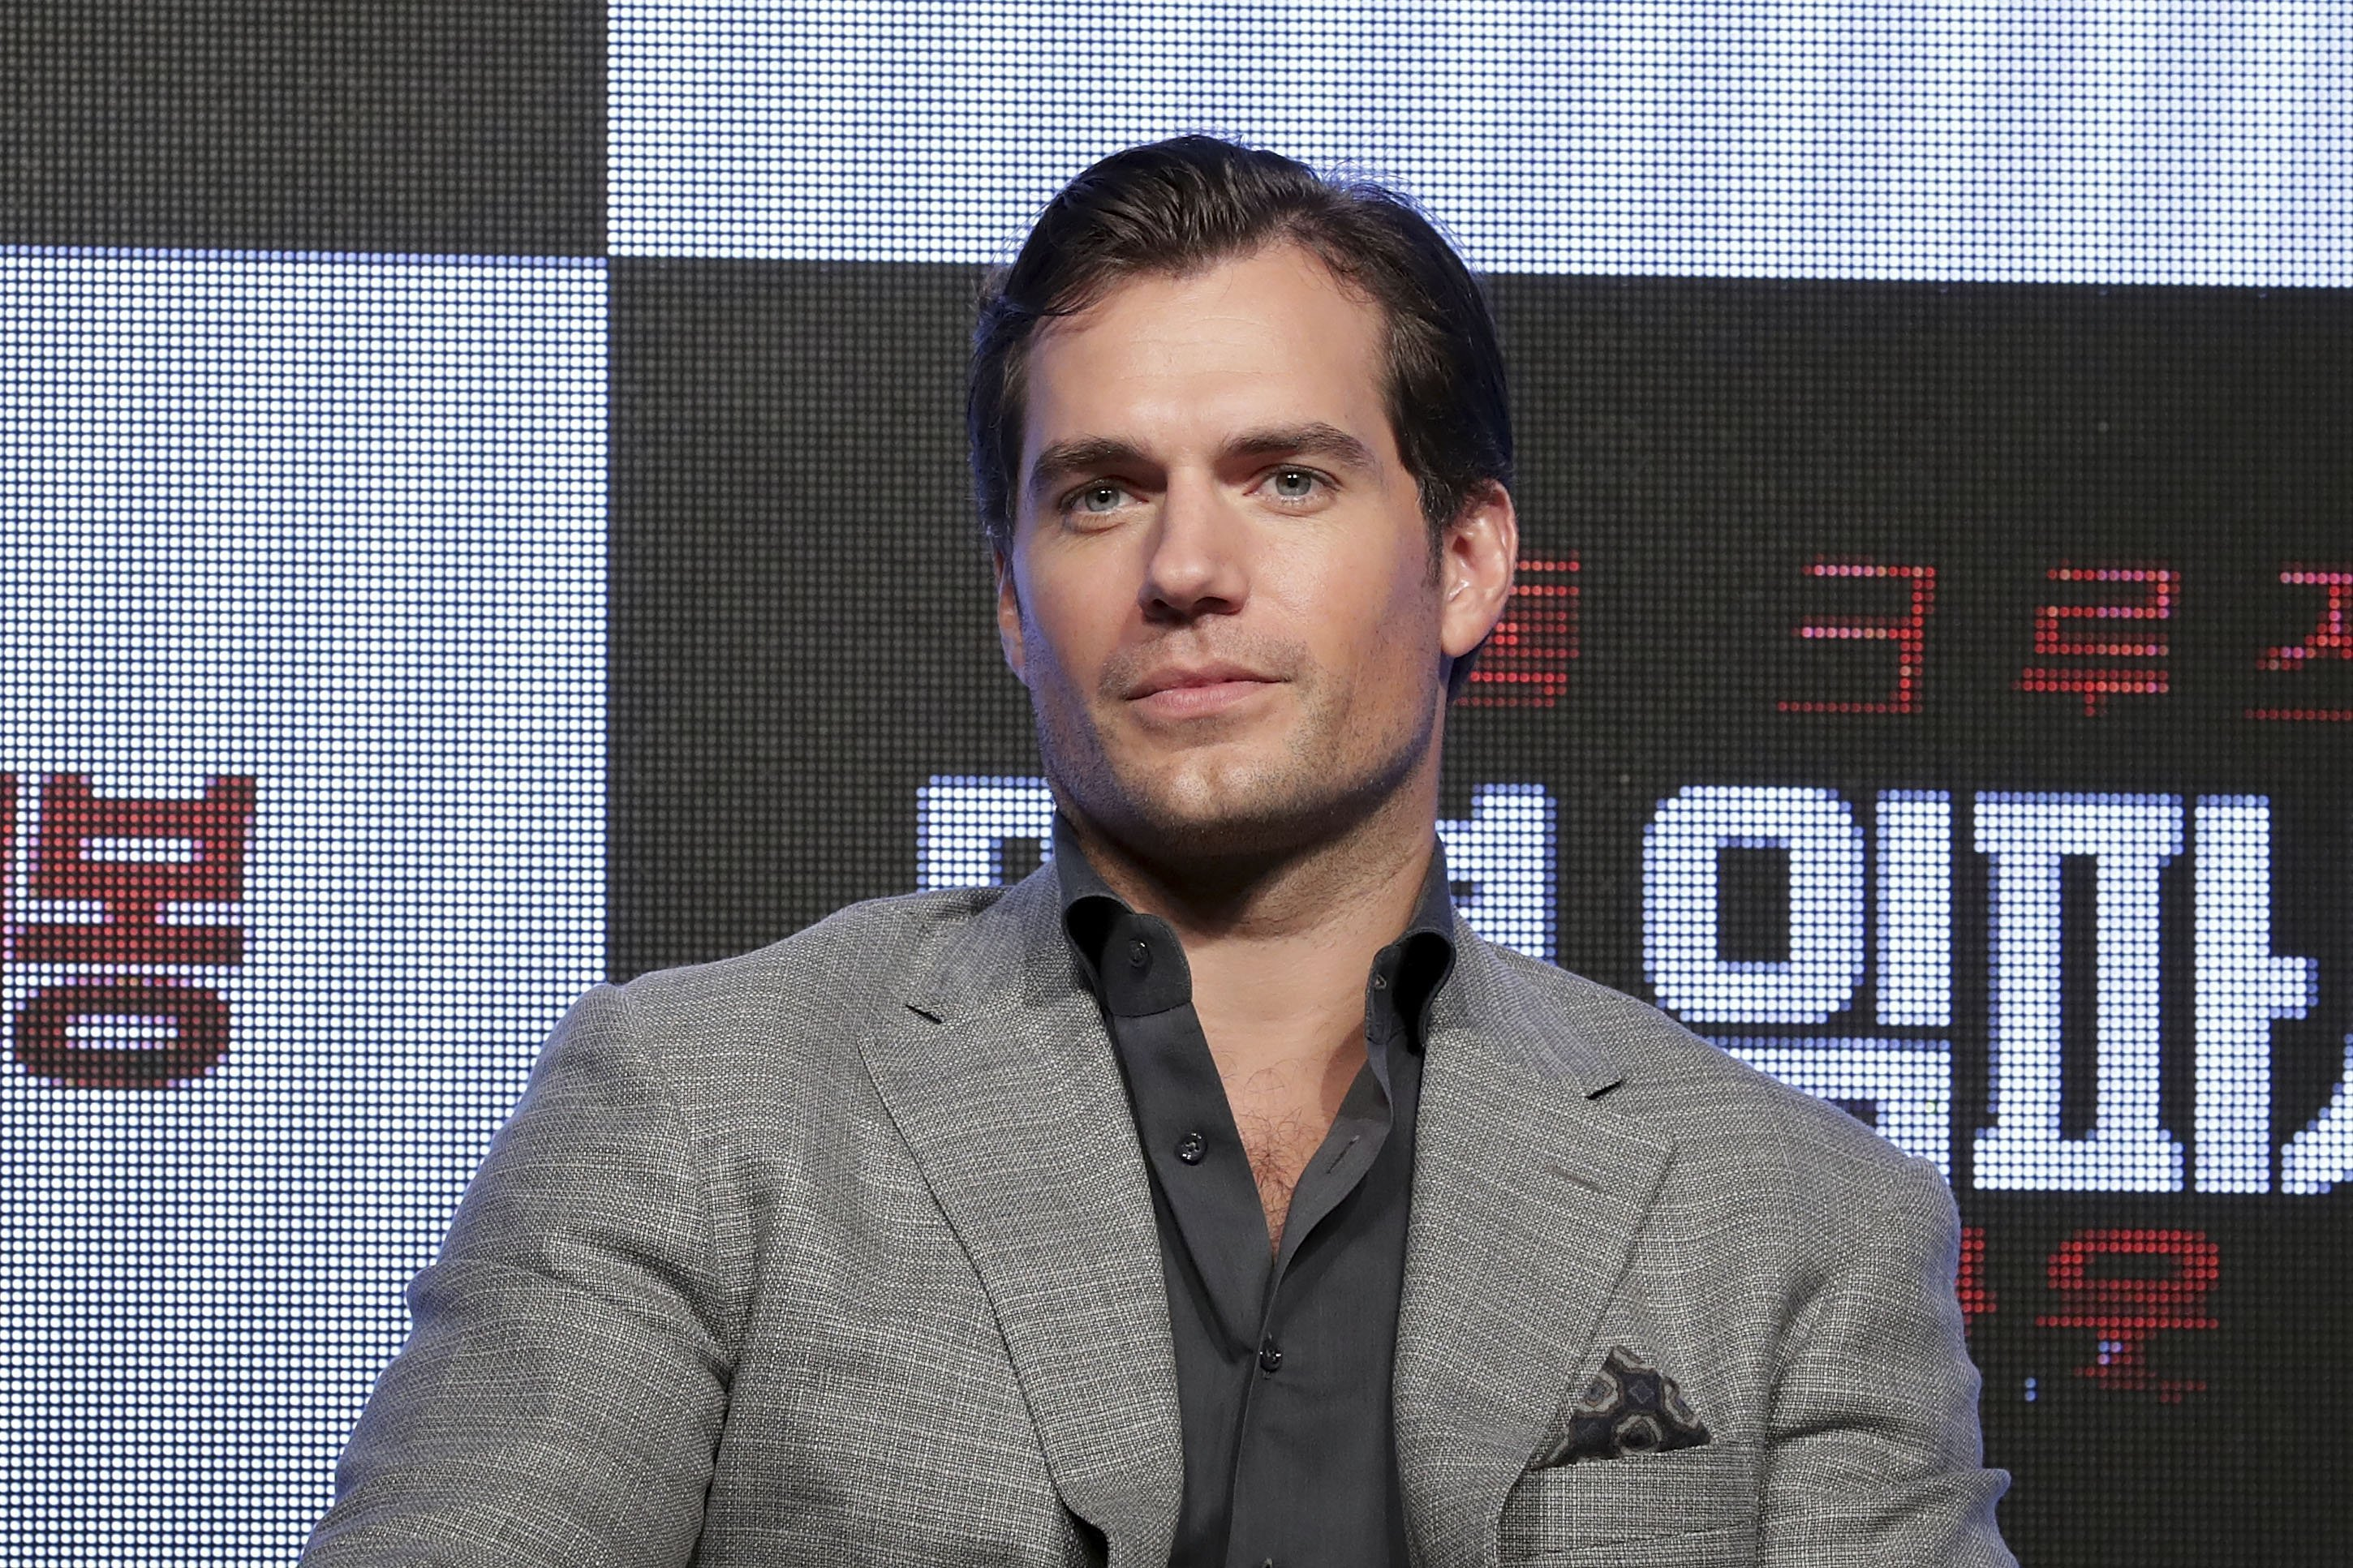 Henry Cavill attends the 'Mission: Impossible - Fallout' Korea Press Conference and Photo Call at Lotte Hotel Seoul on July 16, 2018   Photo: GettyImages